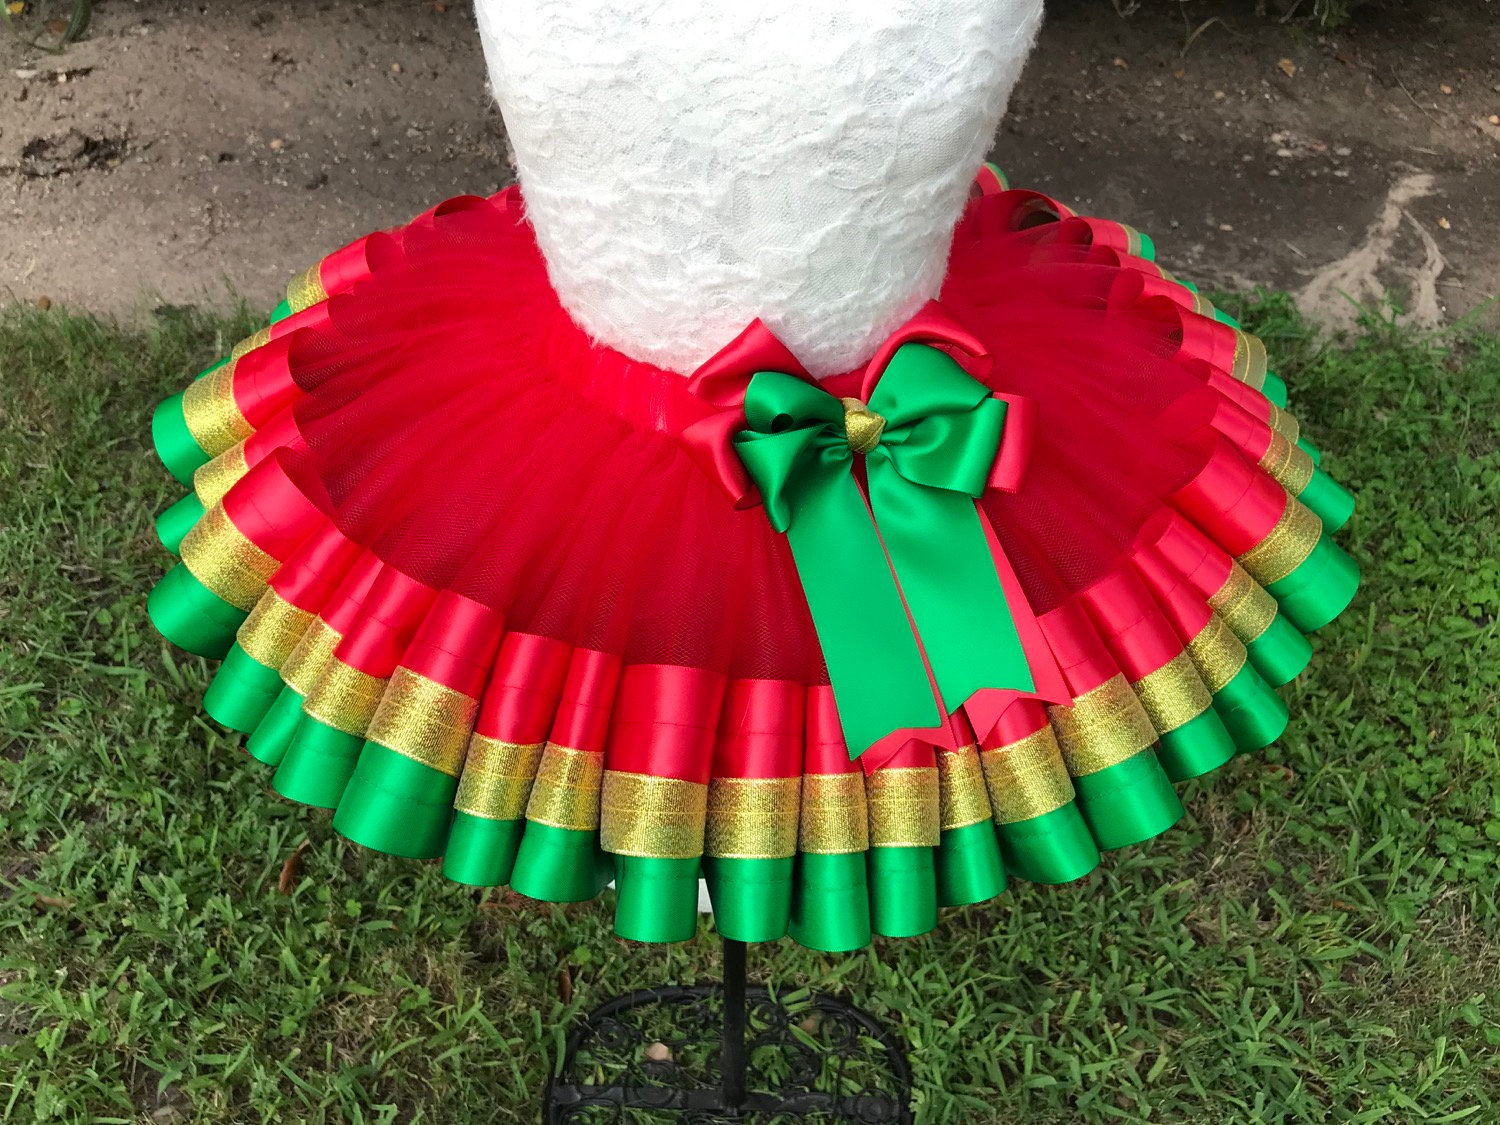 University Of Houston Sewn Ribbon Trimmed TuTu ~~~Optional Matching Over The Top Hair Bow Available~~Ready For FootBall Season~~~~